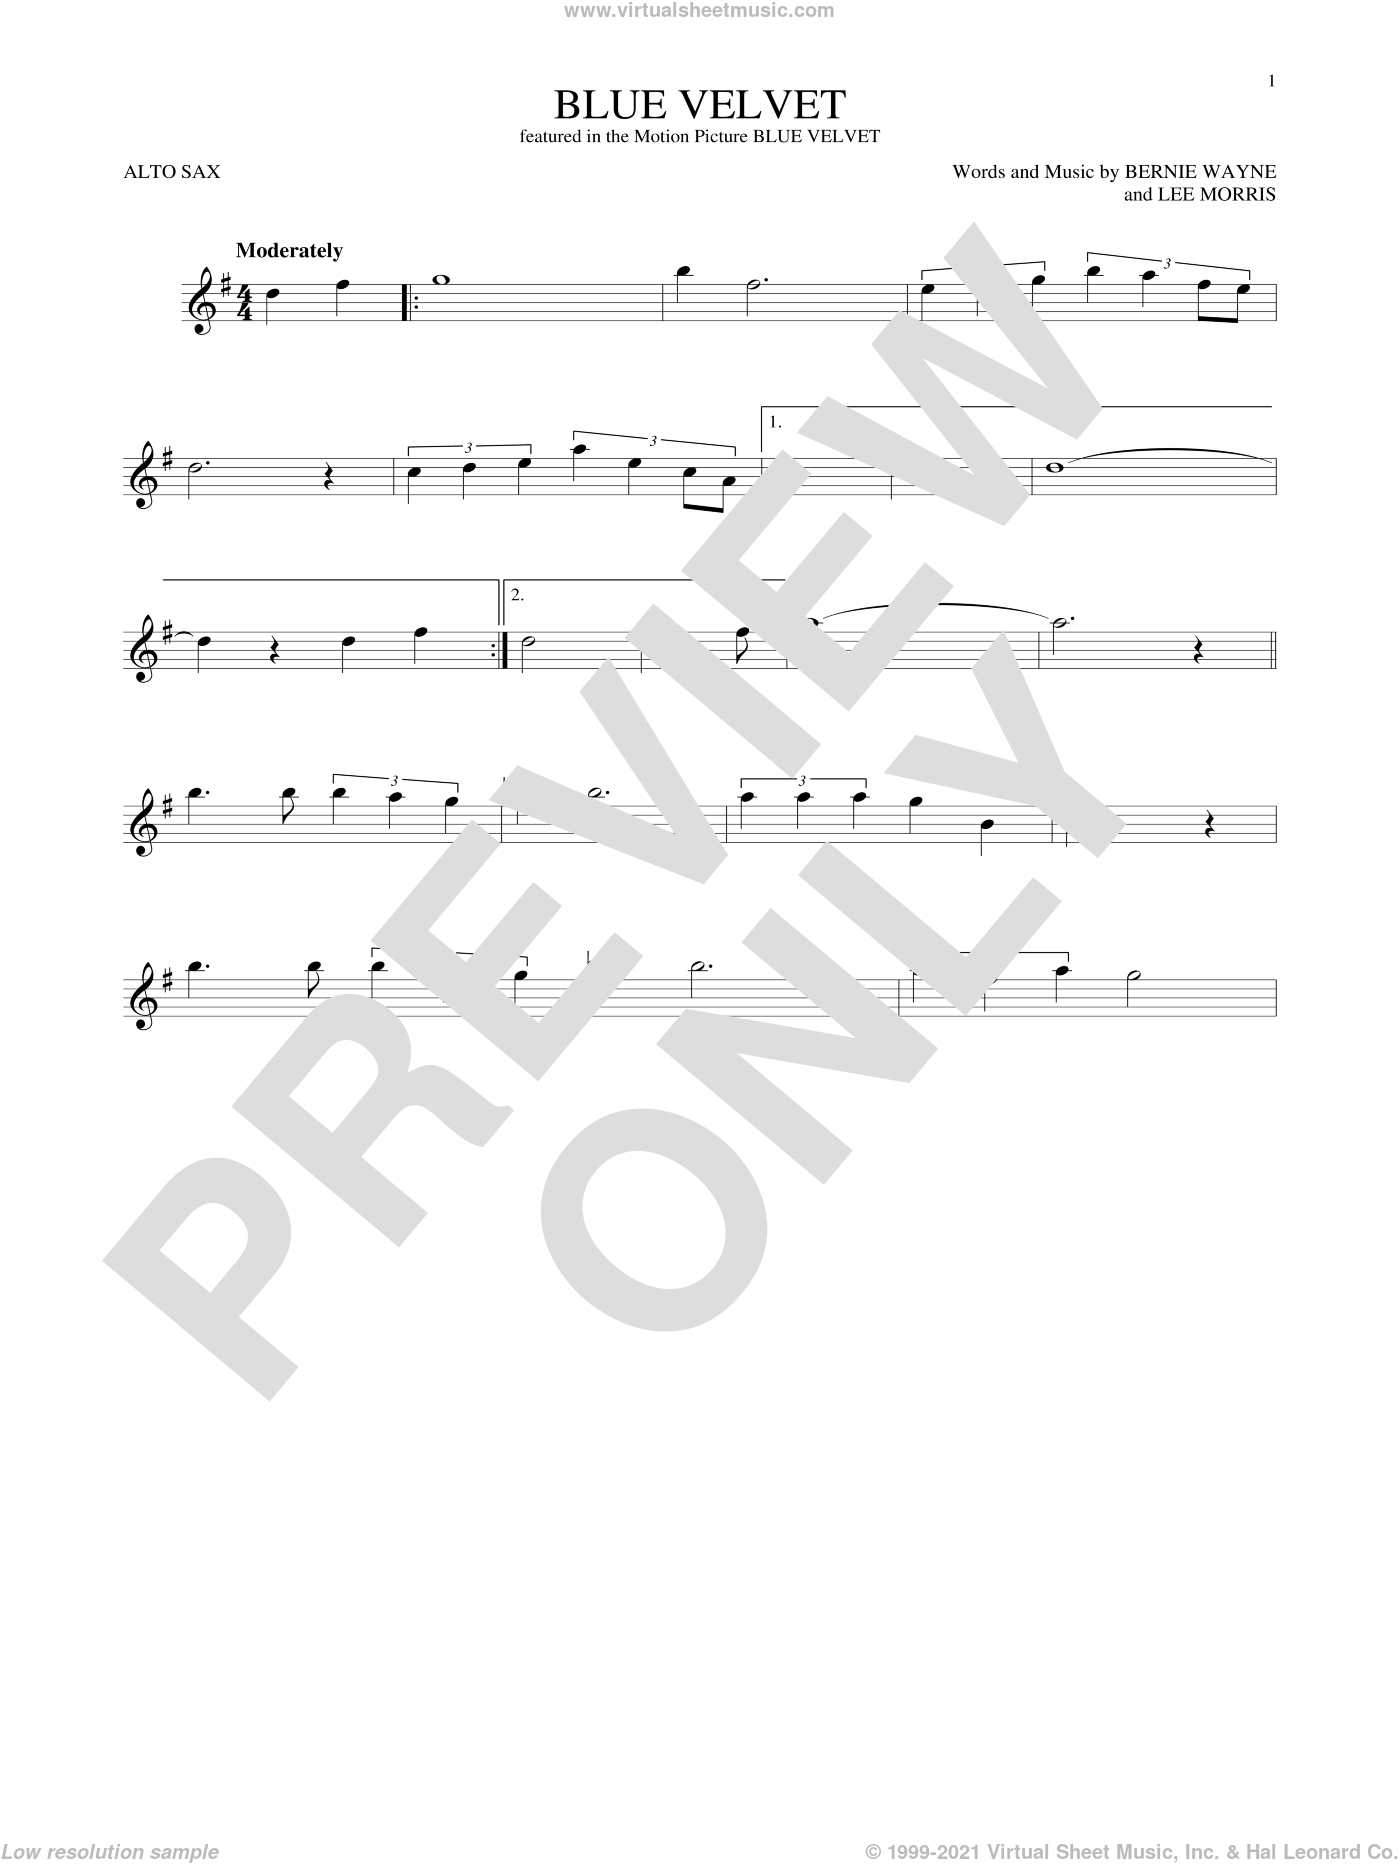 Blue Velvet sheet music for alto saxophone solo by Bobby Vinton, Statues, Bernie Wayne and Lee Morris, intermediate skill level